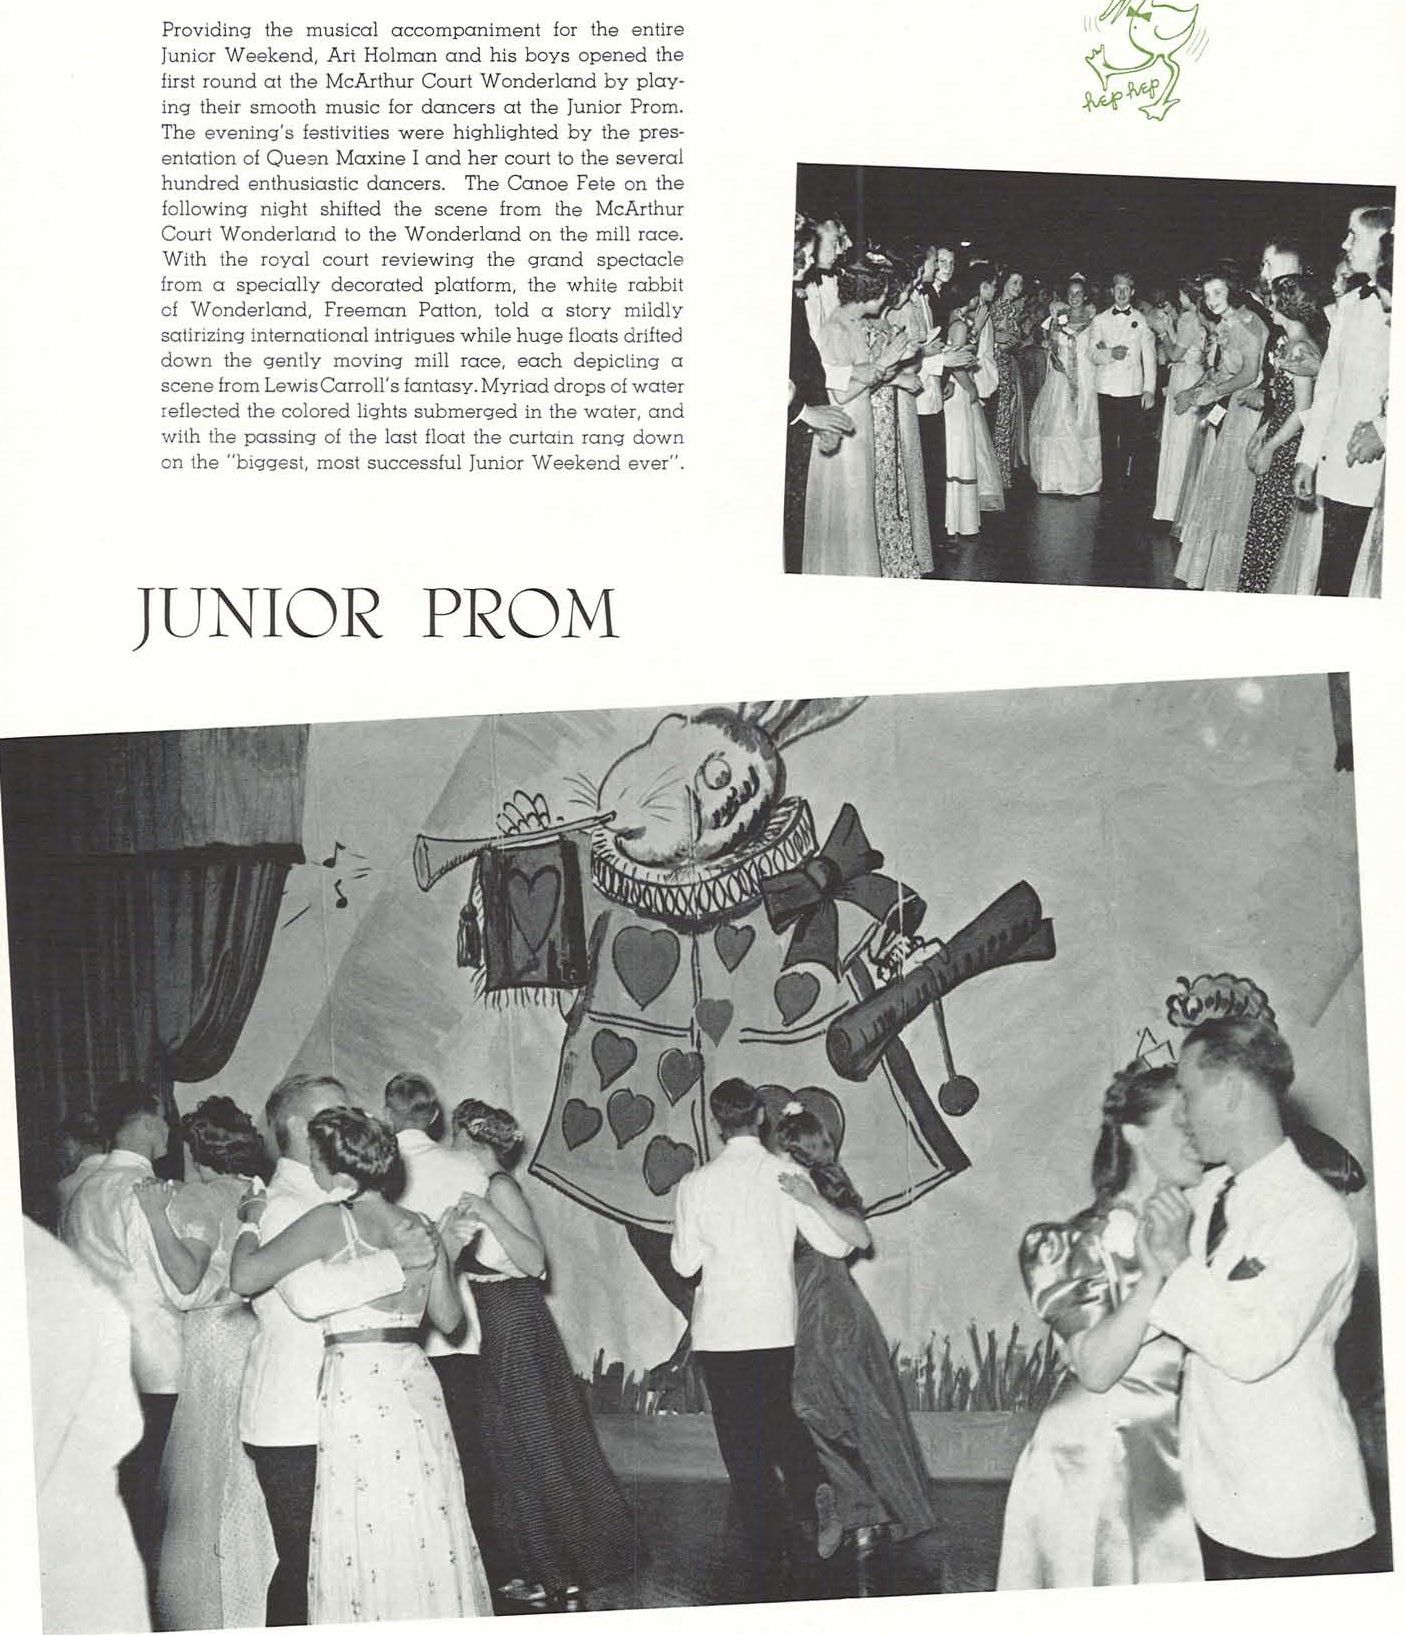 Junior Prom, held during the 1940 Junior Weekend festivities.  From the 1940 Oregana (University of Oregon yearbook).  www.CampusAttic.com